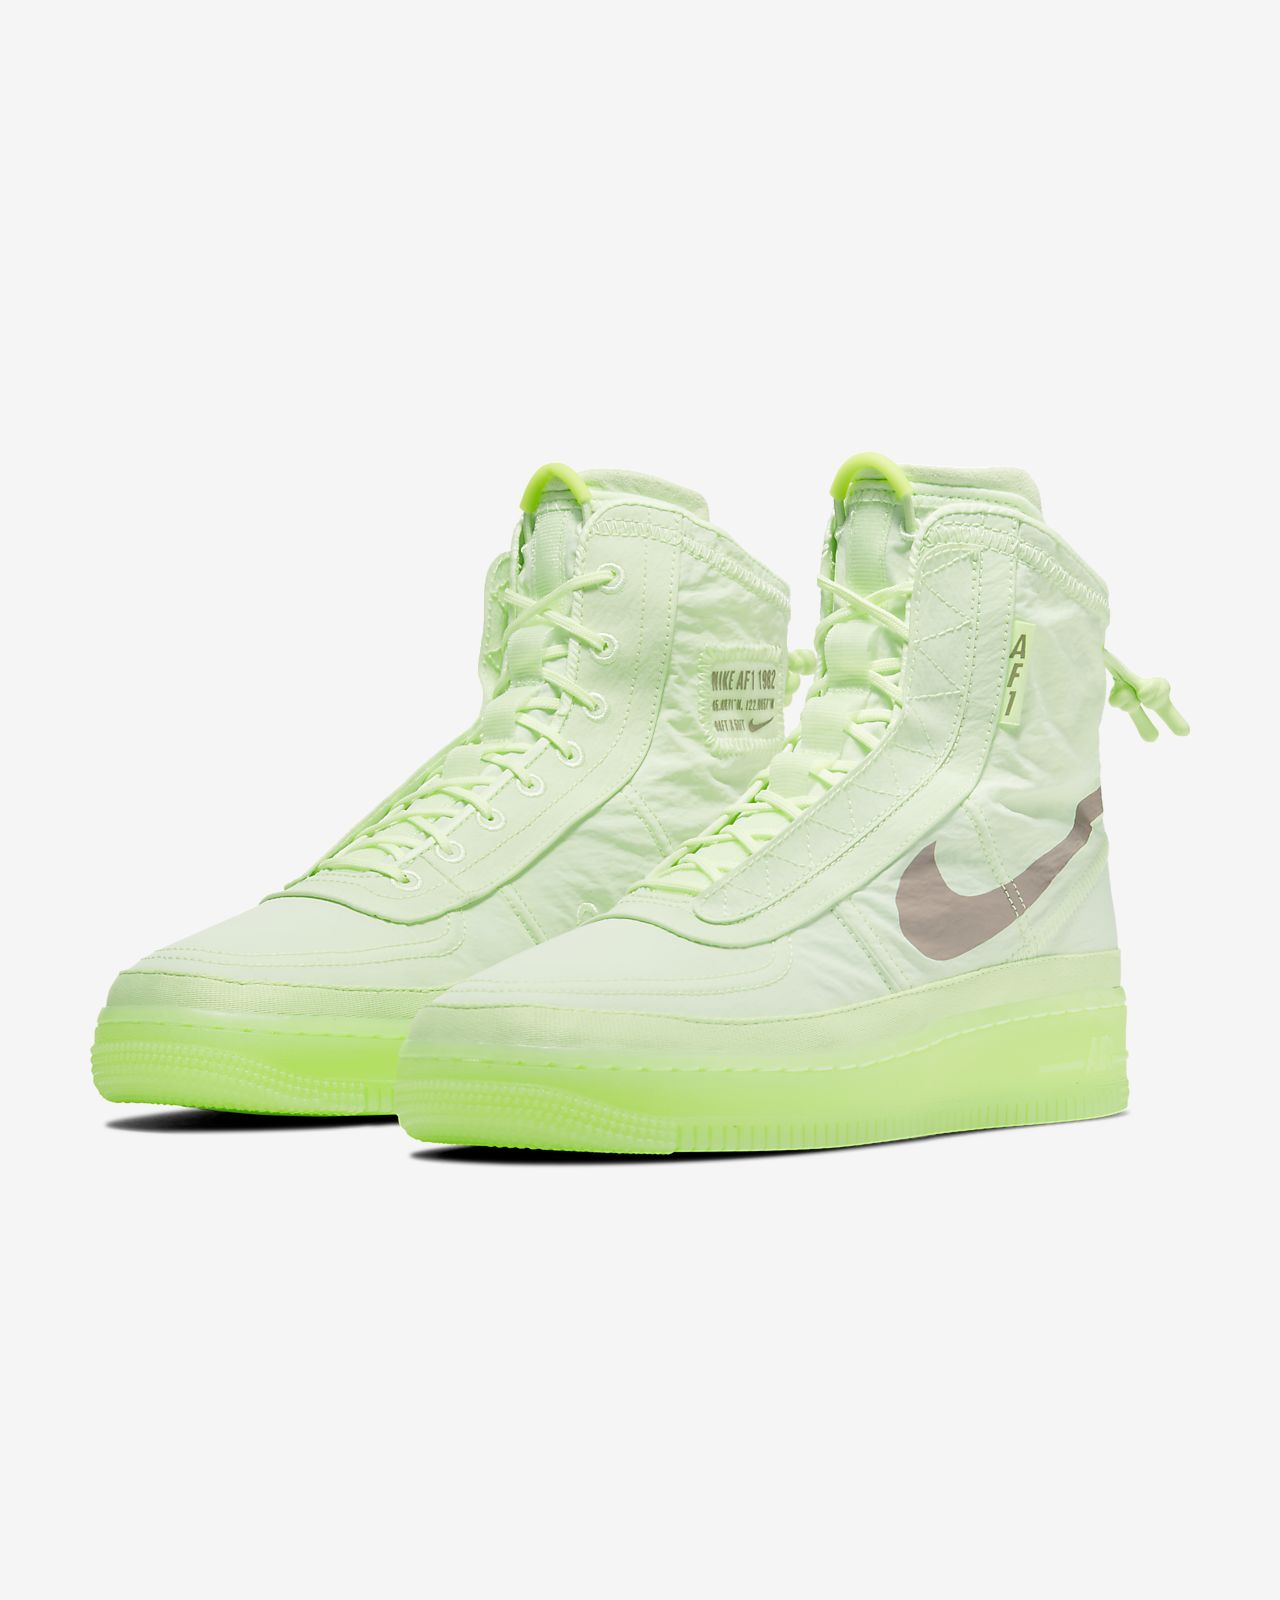 Chaussure Nike Air Force 1 Shell pour Femme